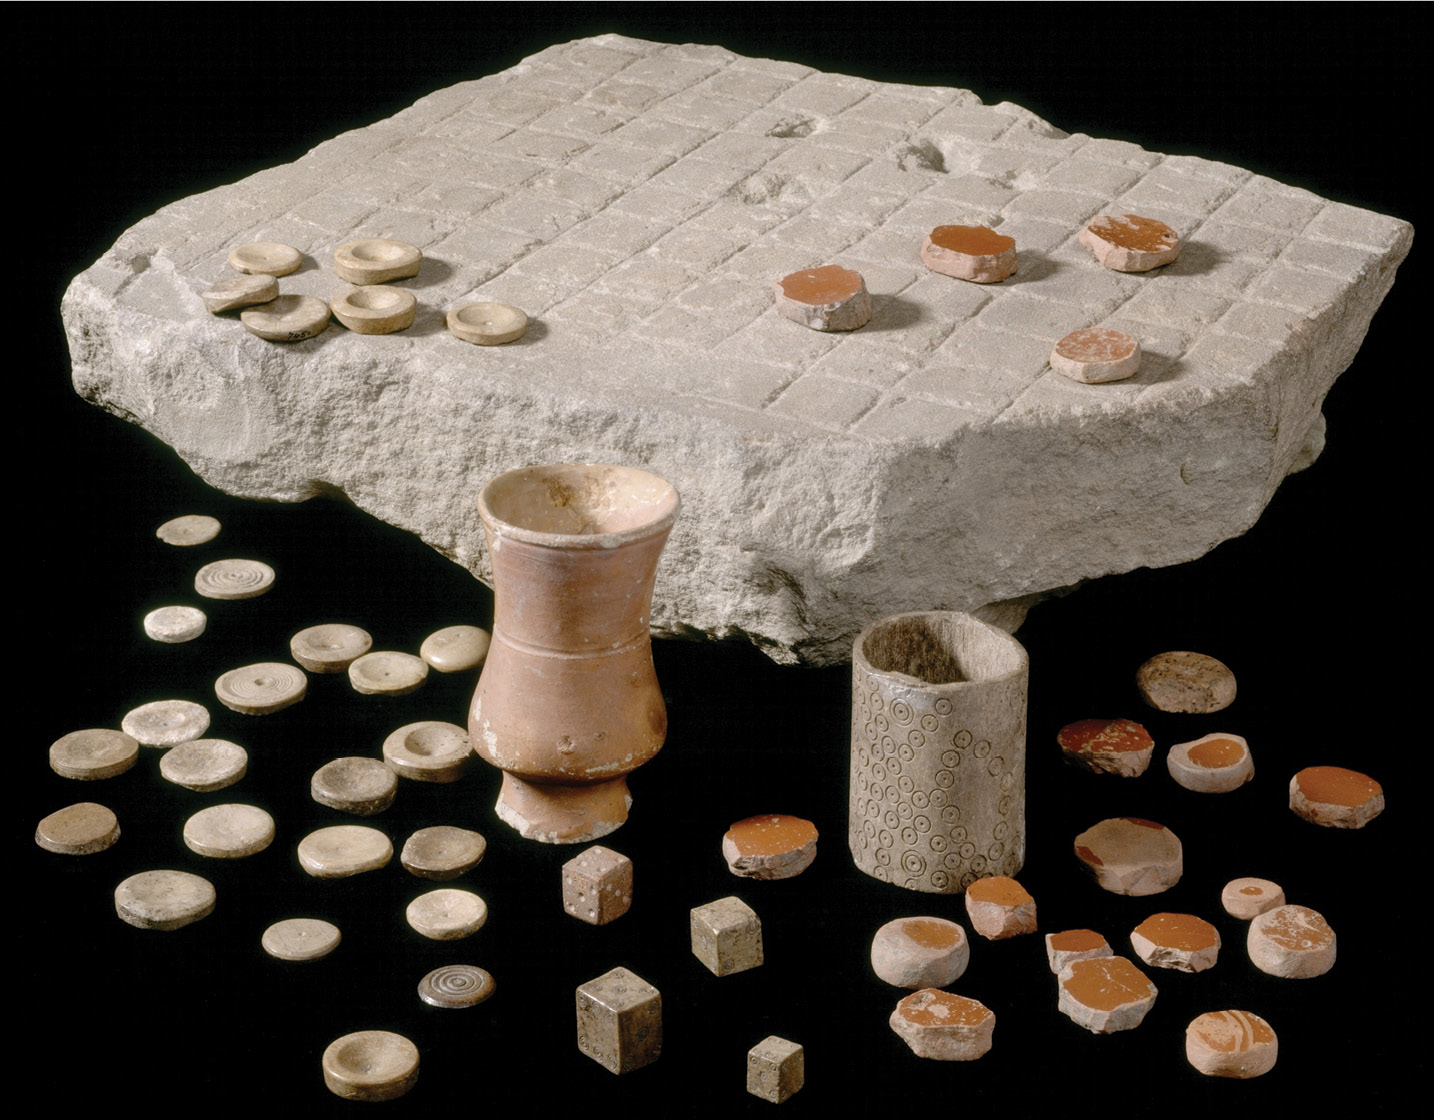 left A stone-carved gaming board from Corbridge with four bone dice, bone counters, counters cut down from Samian vessels, and two shakers, one of bone and one of ceramic.